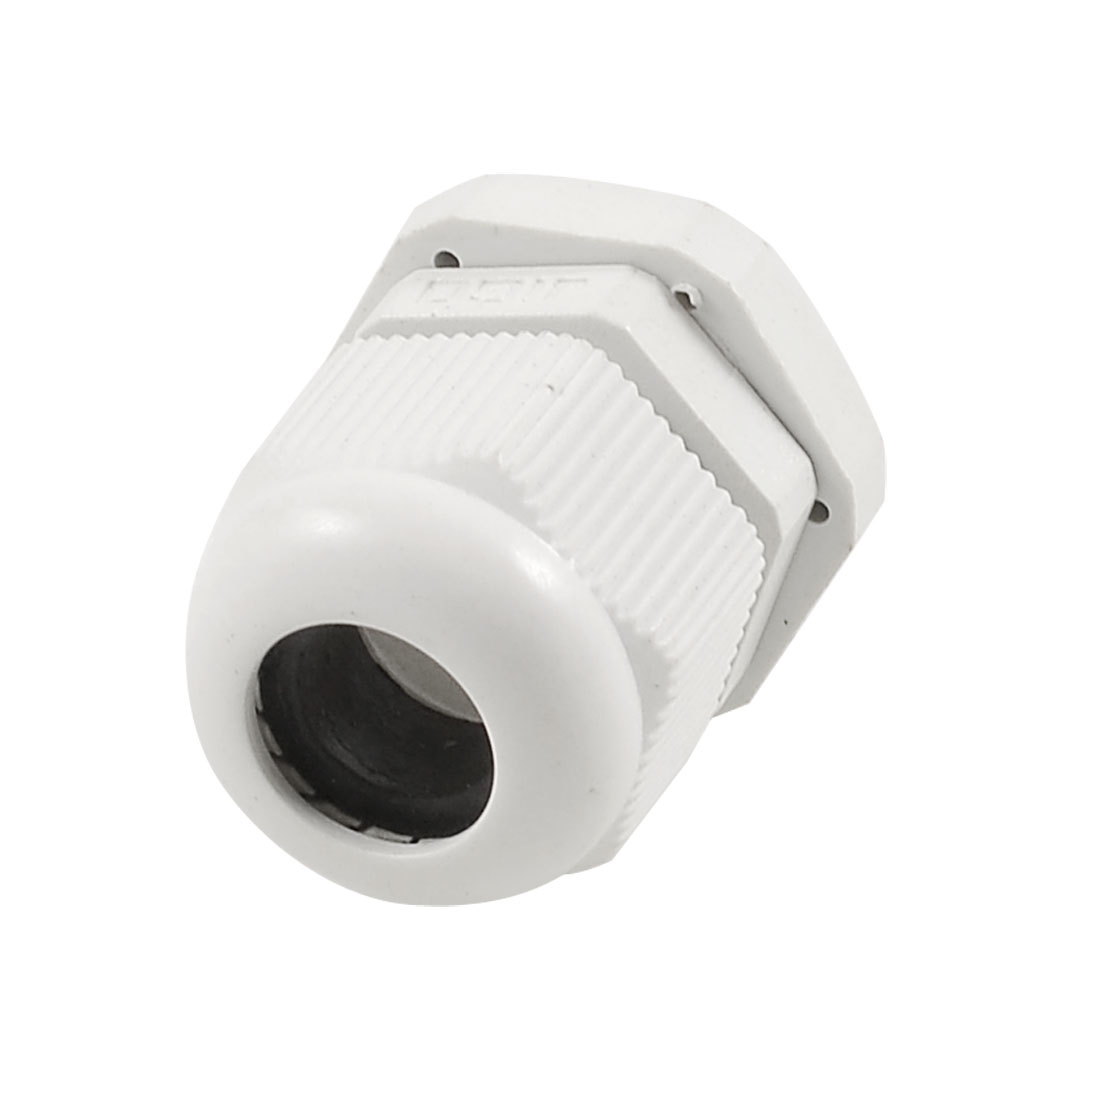 PG13.5 White Plastic 9mm Thread Length Waterproof IP67 Cable Joints